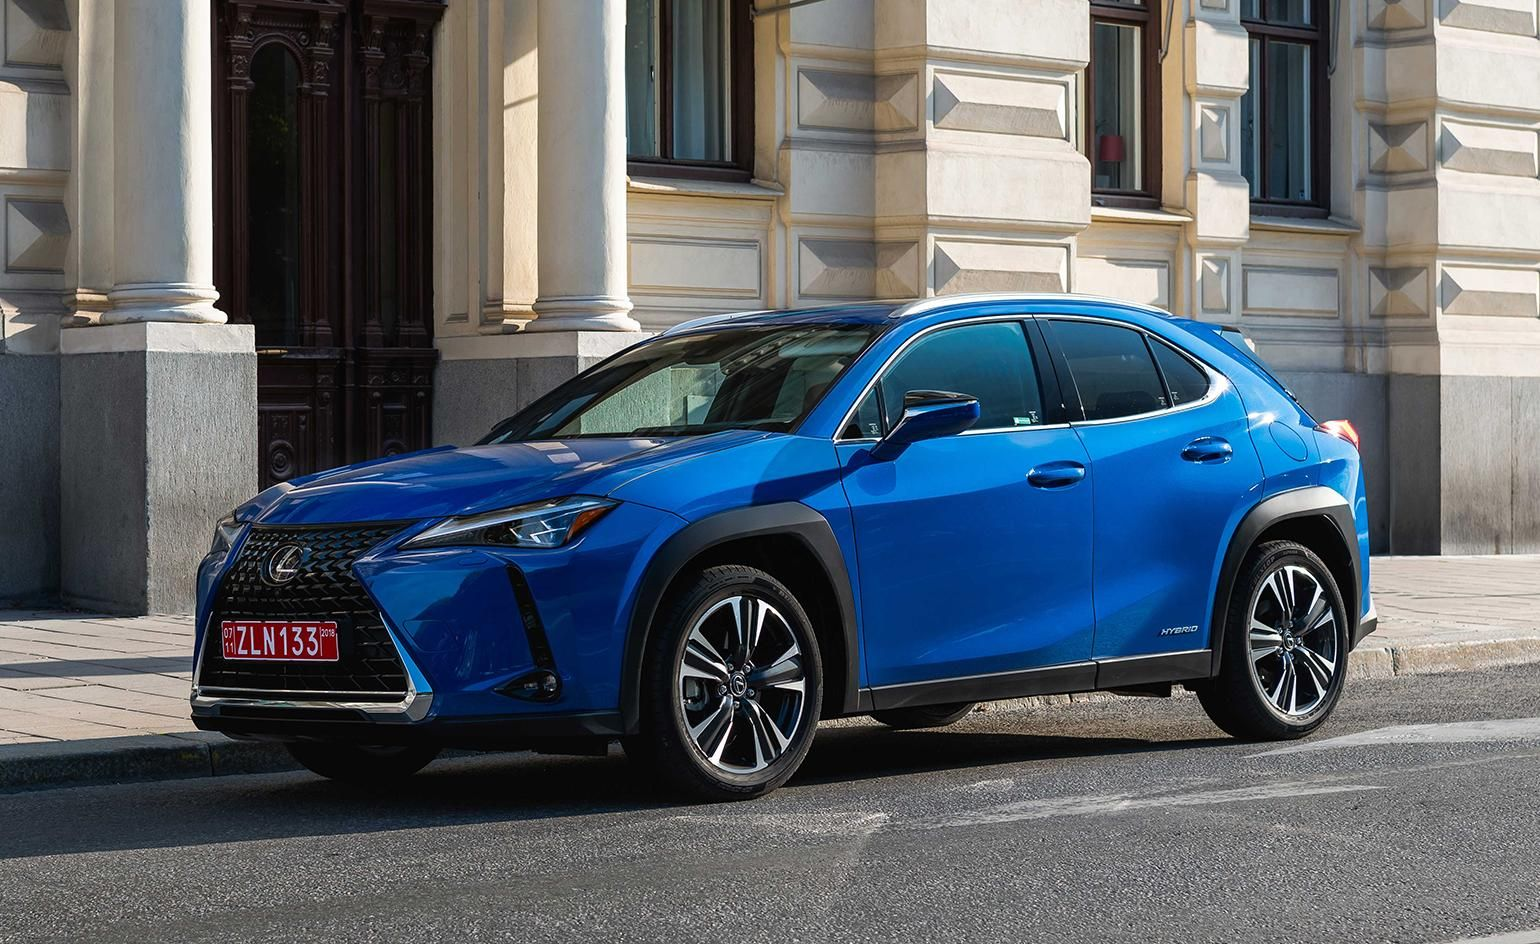 Lexus Celebrates 30 Years Of Forward Thinking Design With A New Compact Suv Compact Suv Lexus Suv